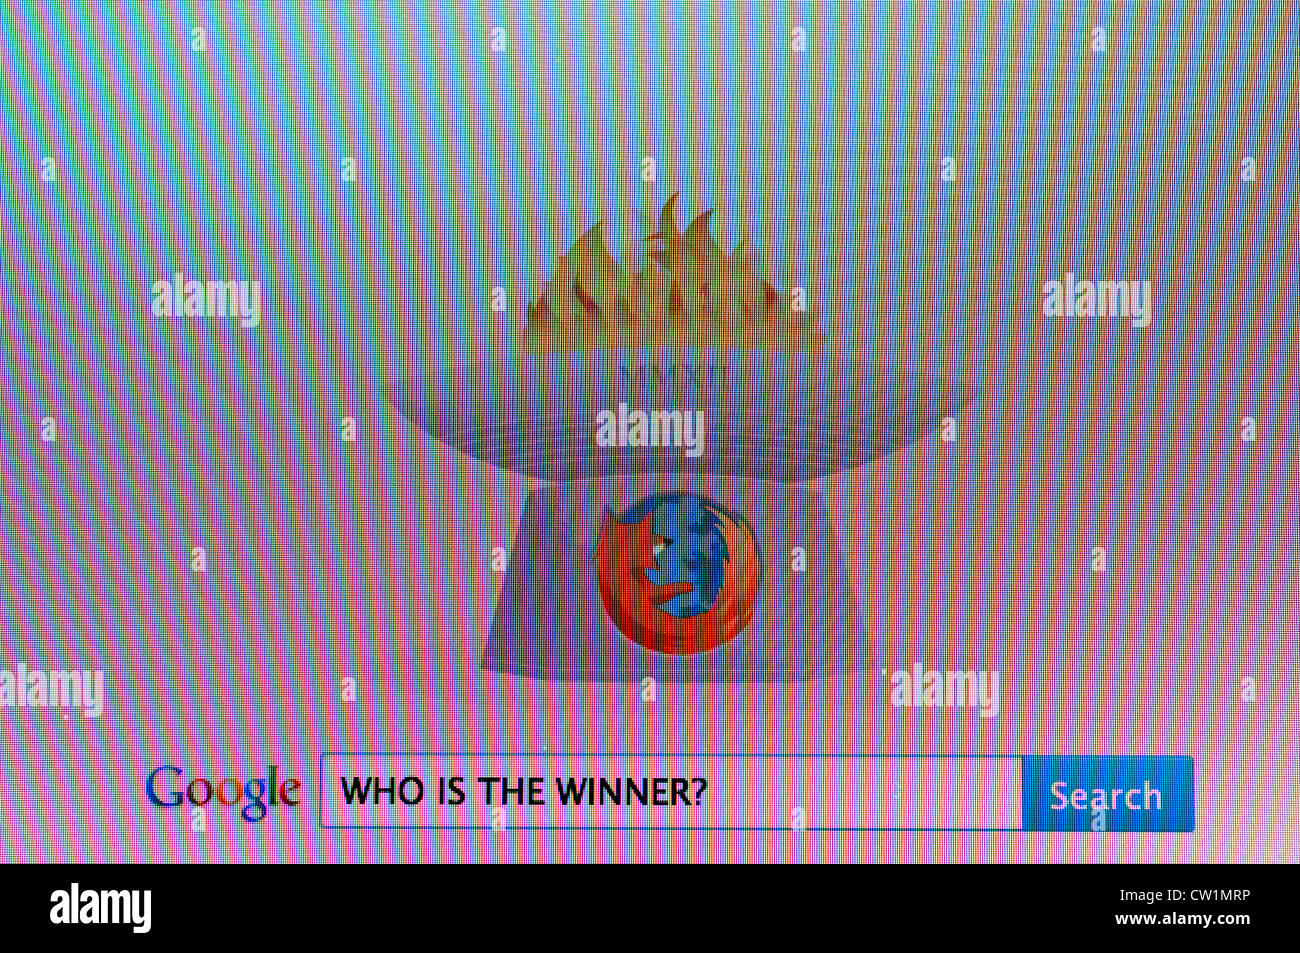 Computer screen with Google search 'Who is the Winner?' - Stock Image